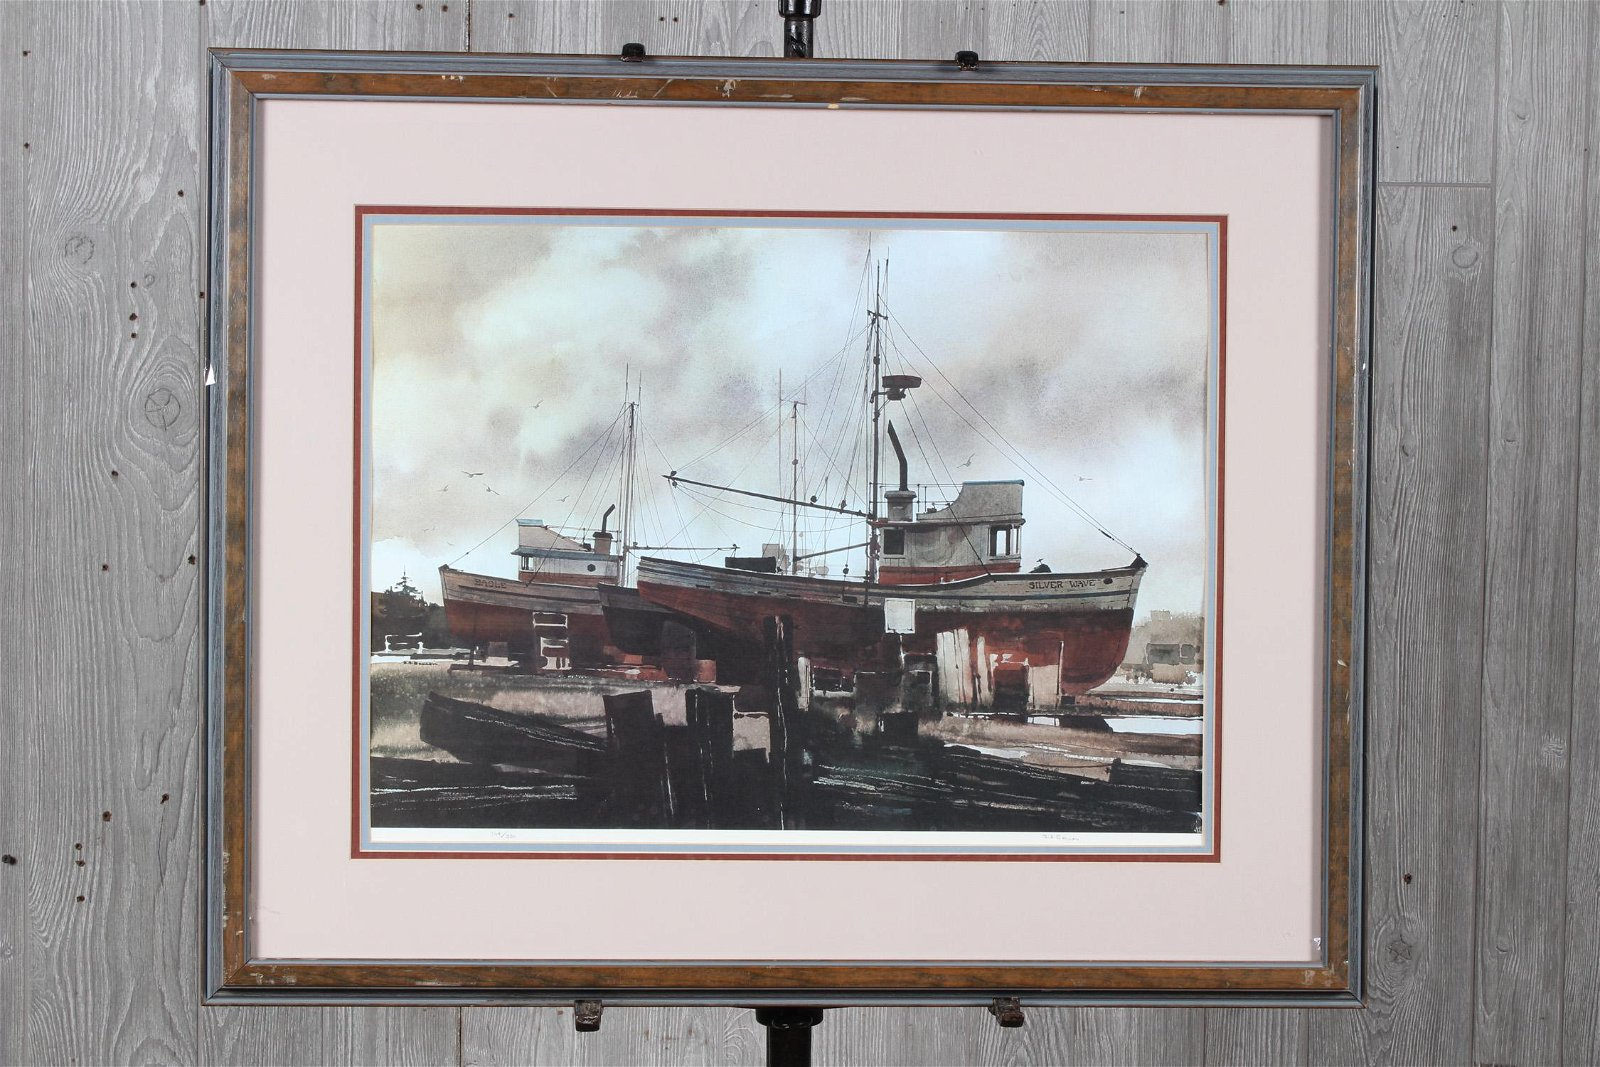 Ritchie Allen Benson Signed Limited Ed Lithograph